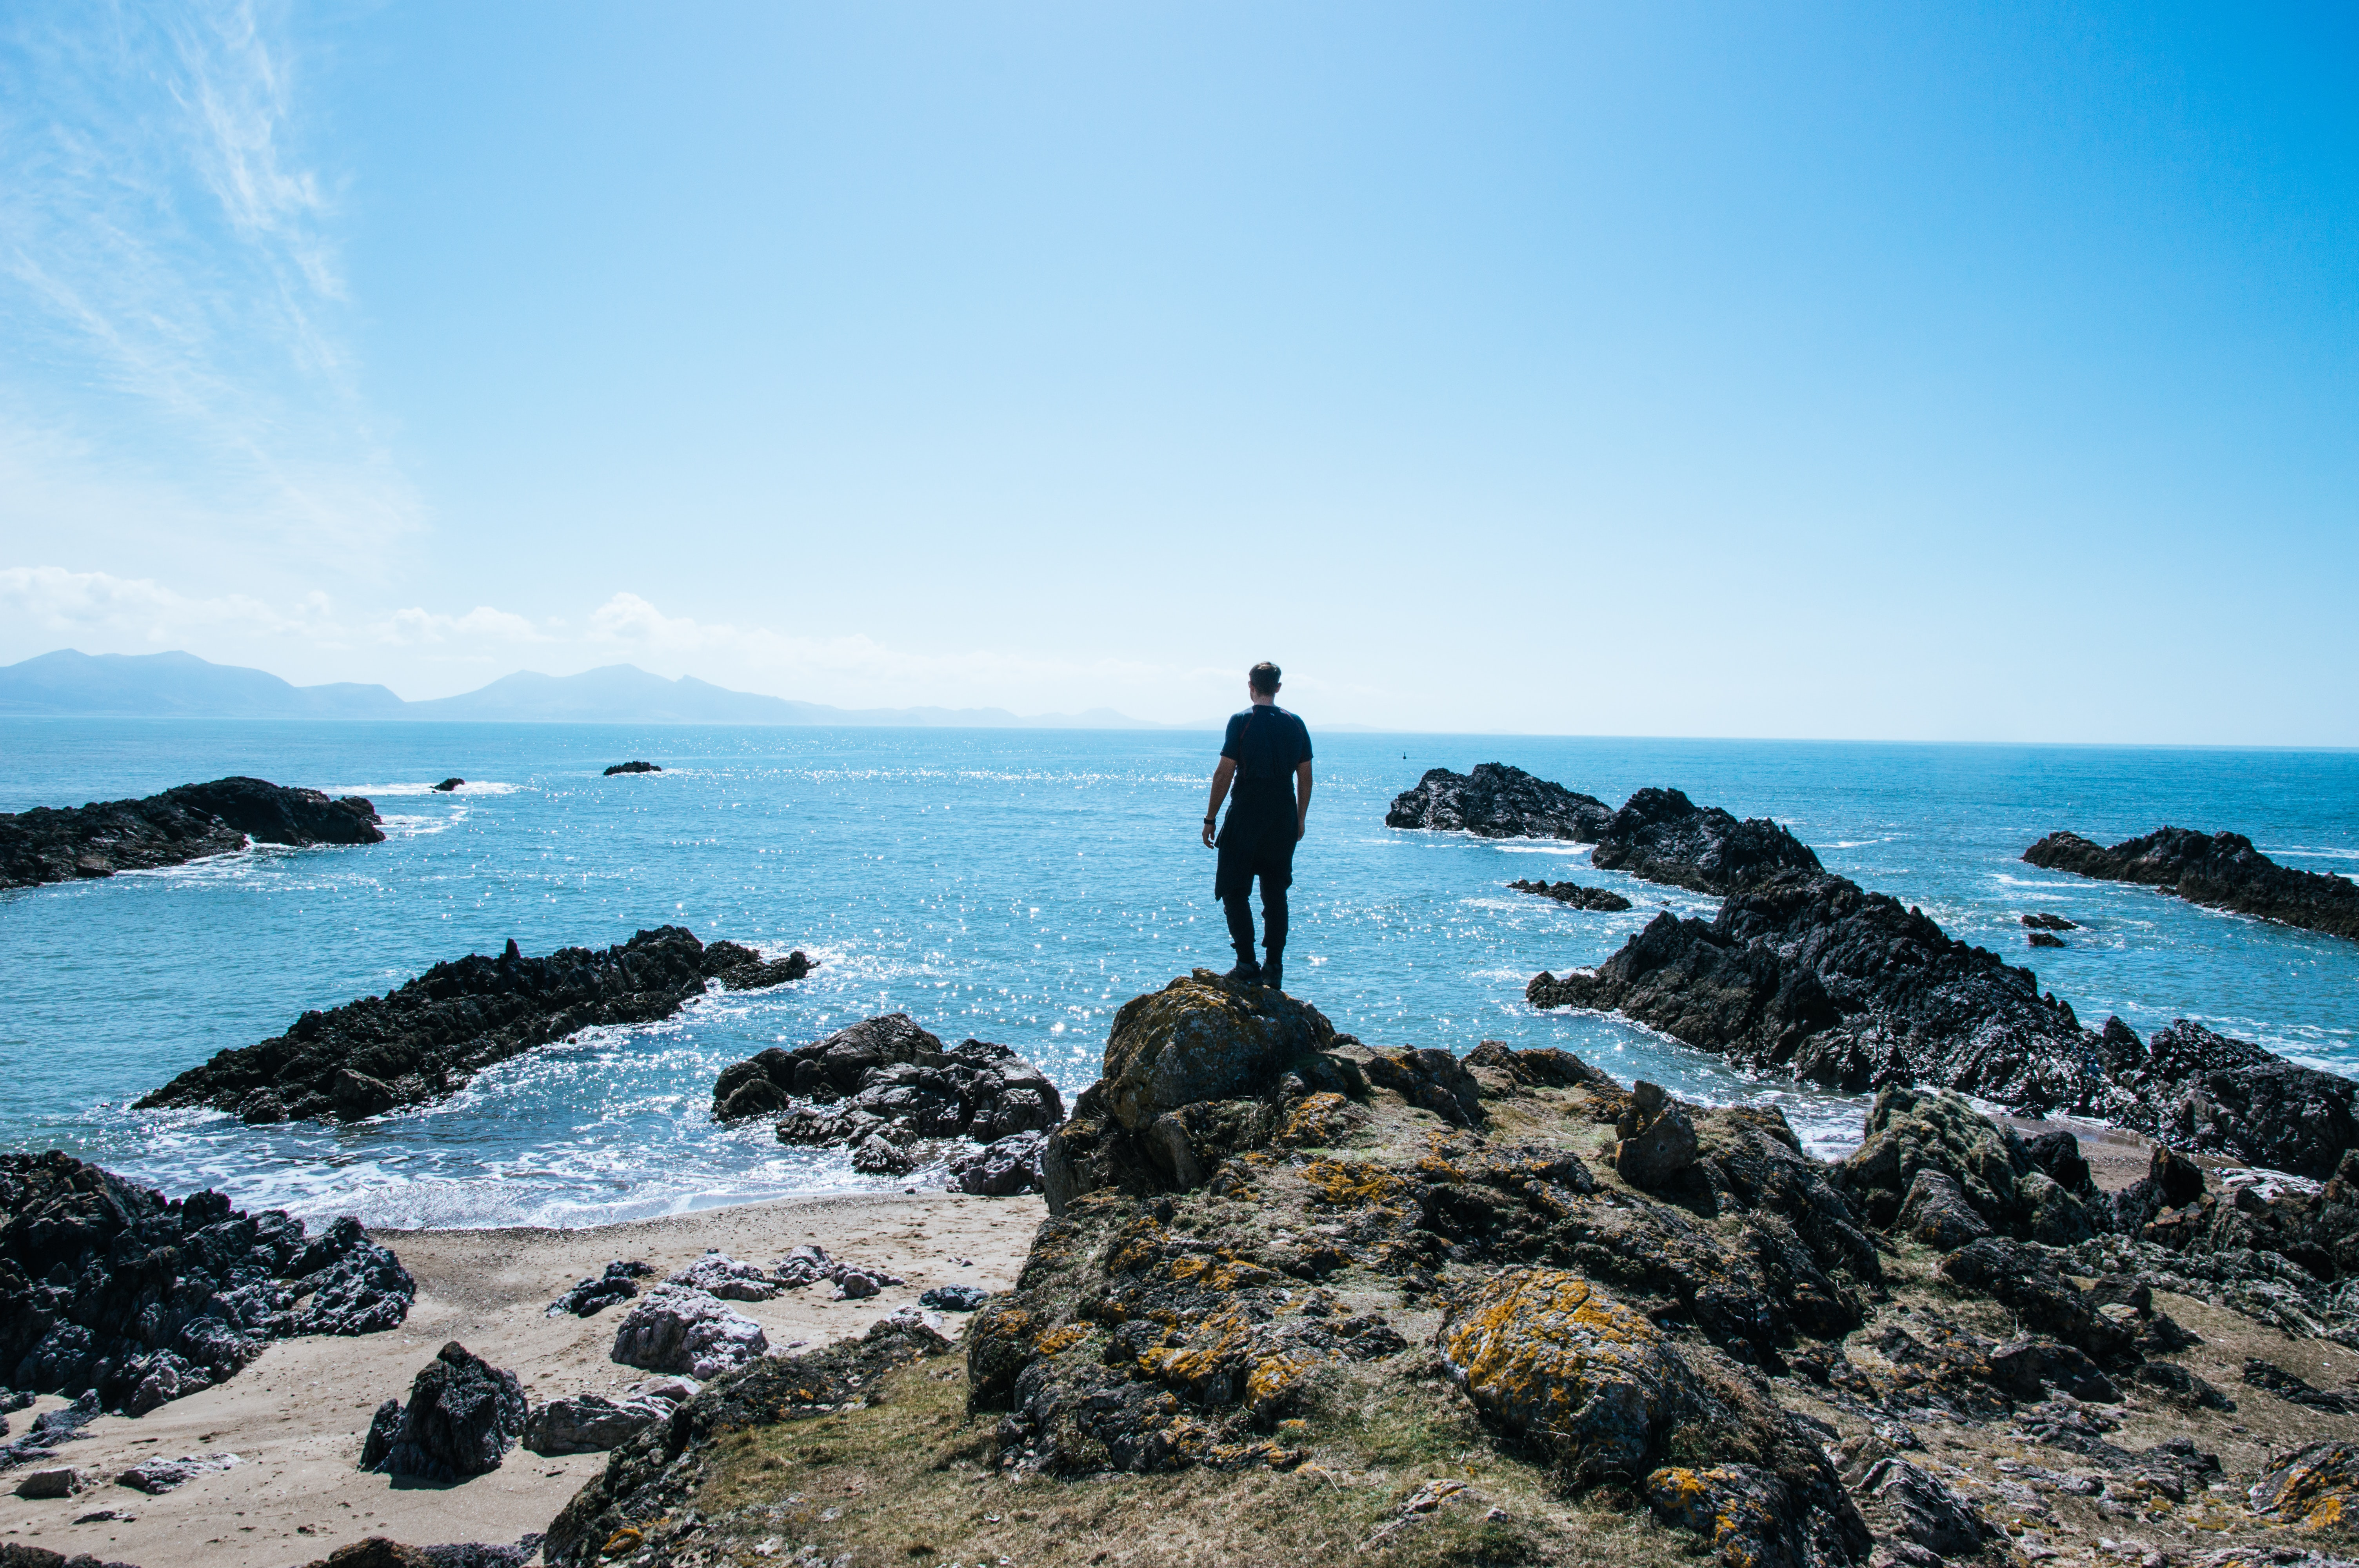 man standing on top of rock formation near body of water